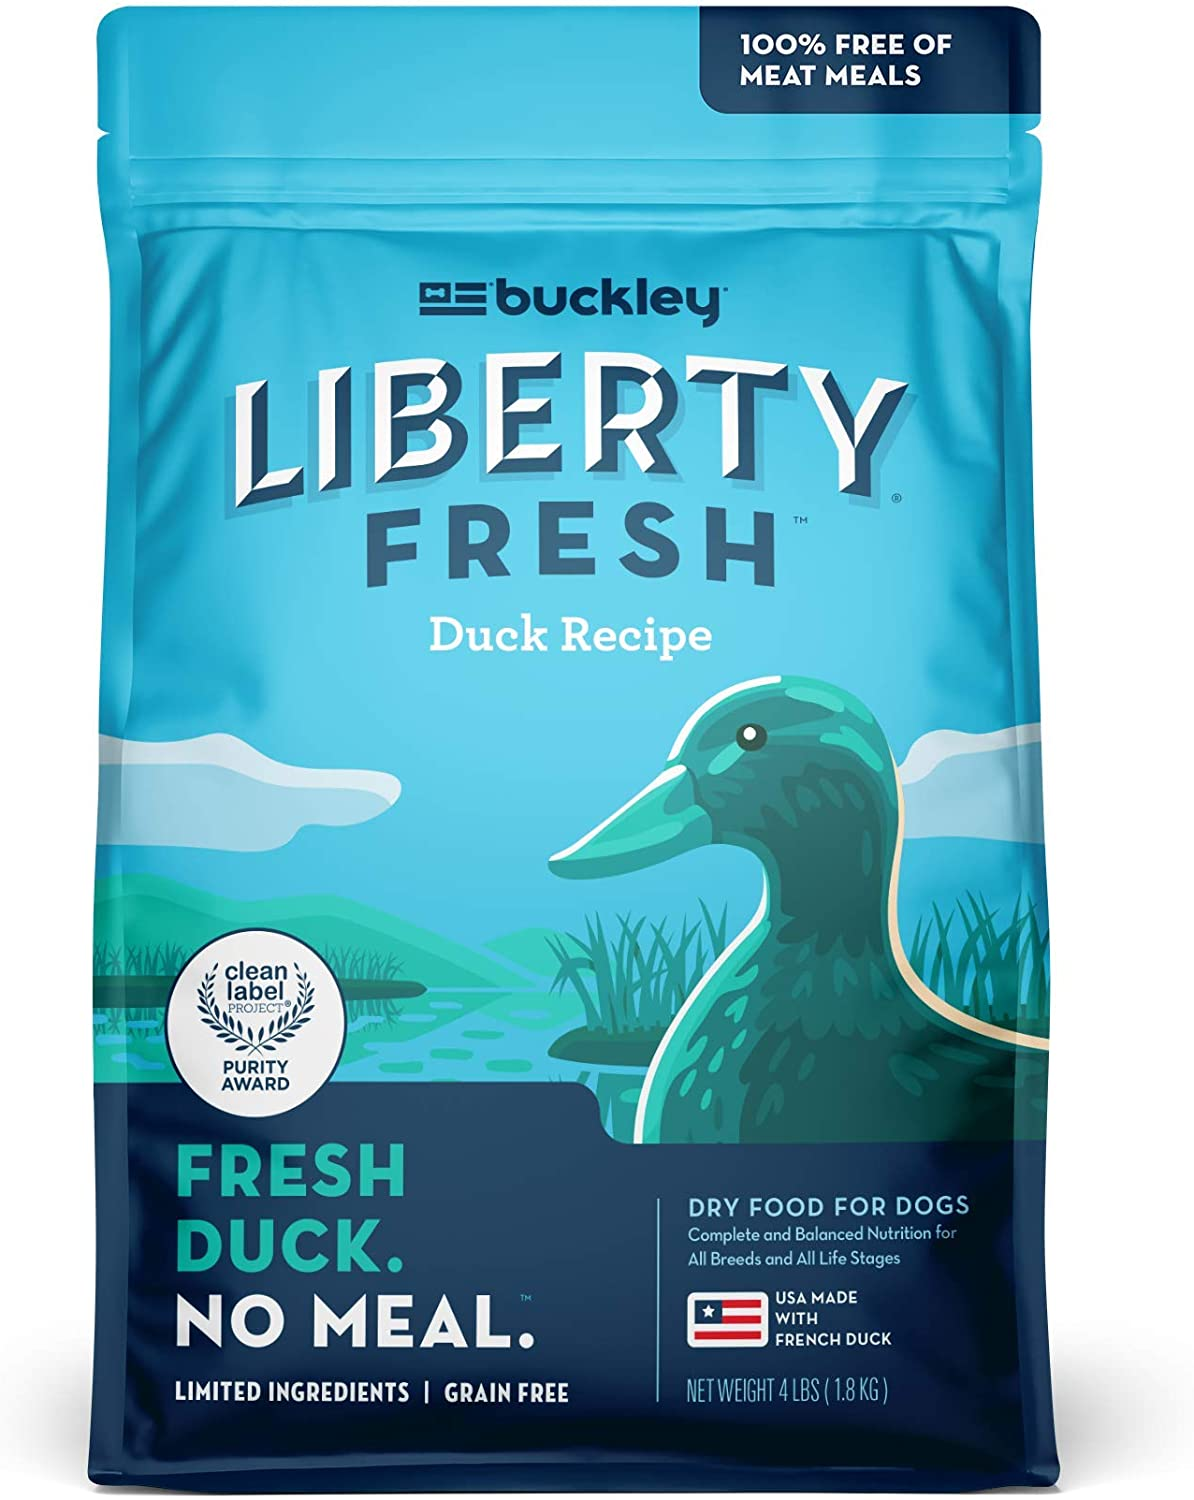 Buckley Liberty Fresh Dry Food for Dogs, Six Recipe Options, 4-24 Lbs